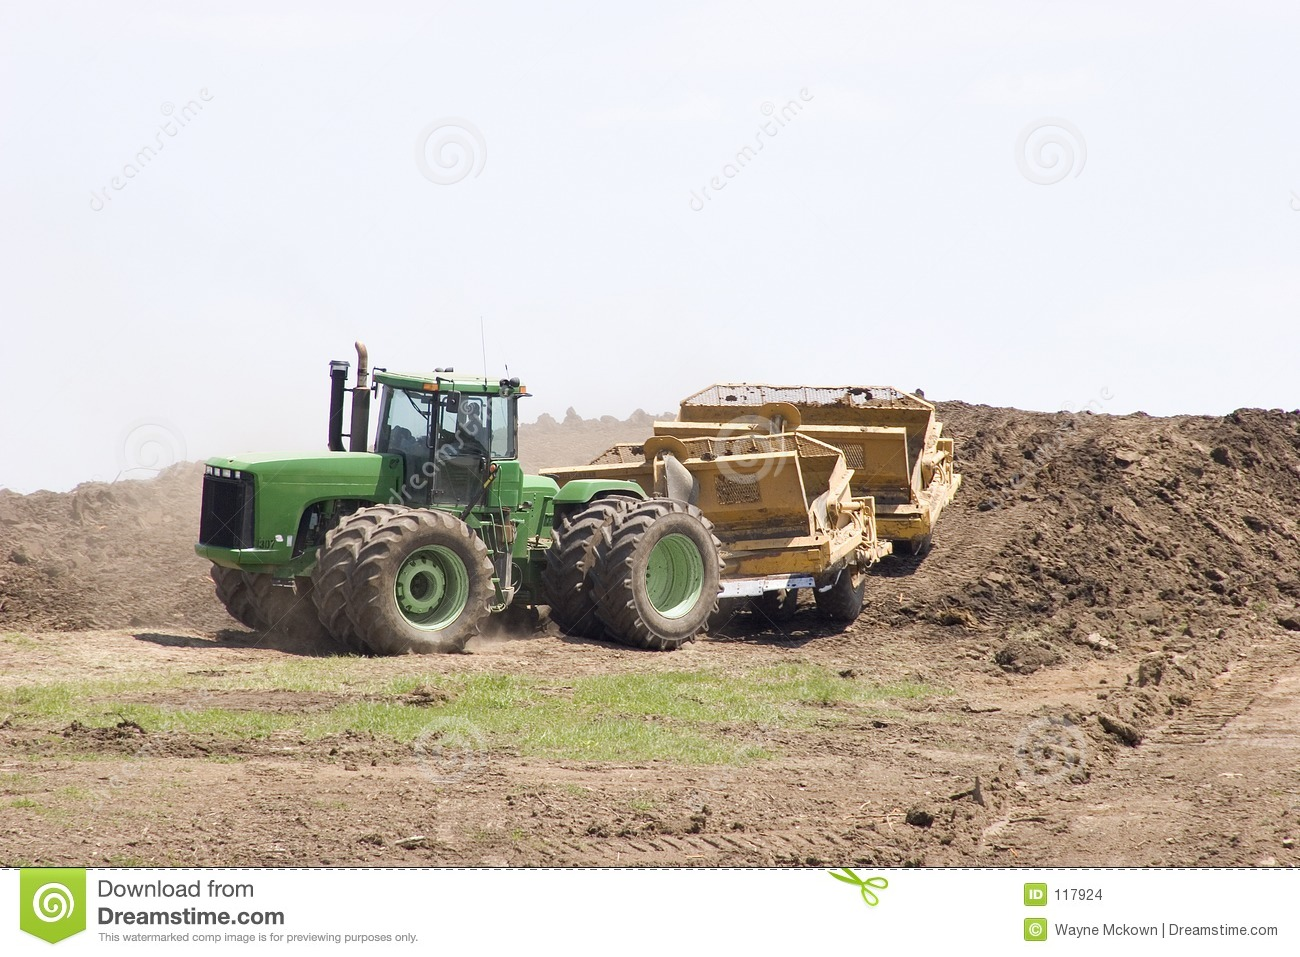 Building a hill